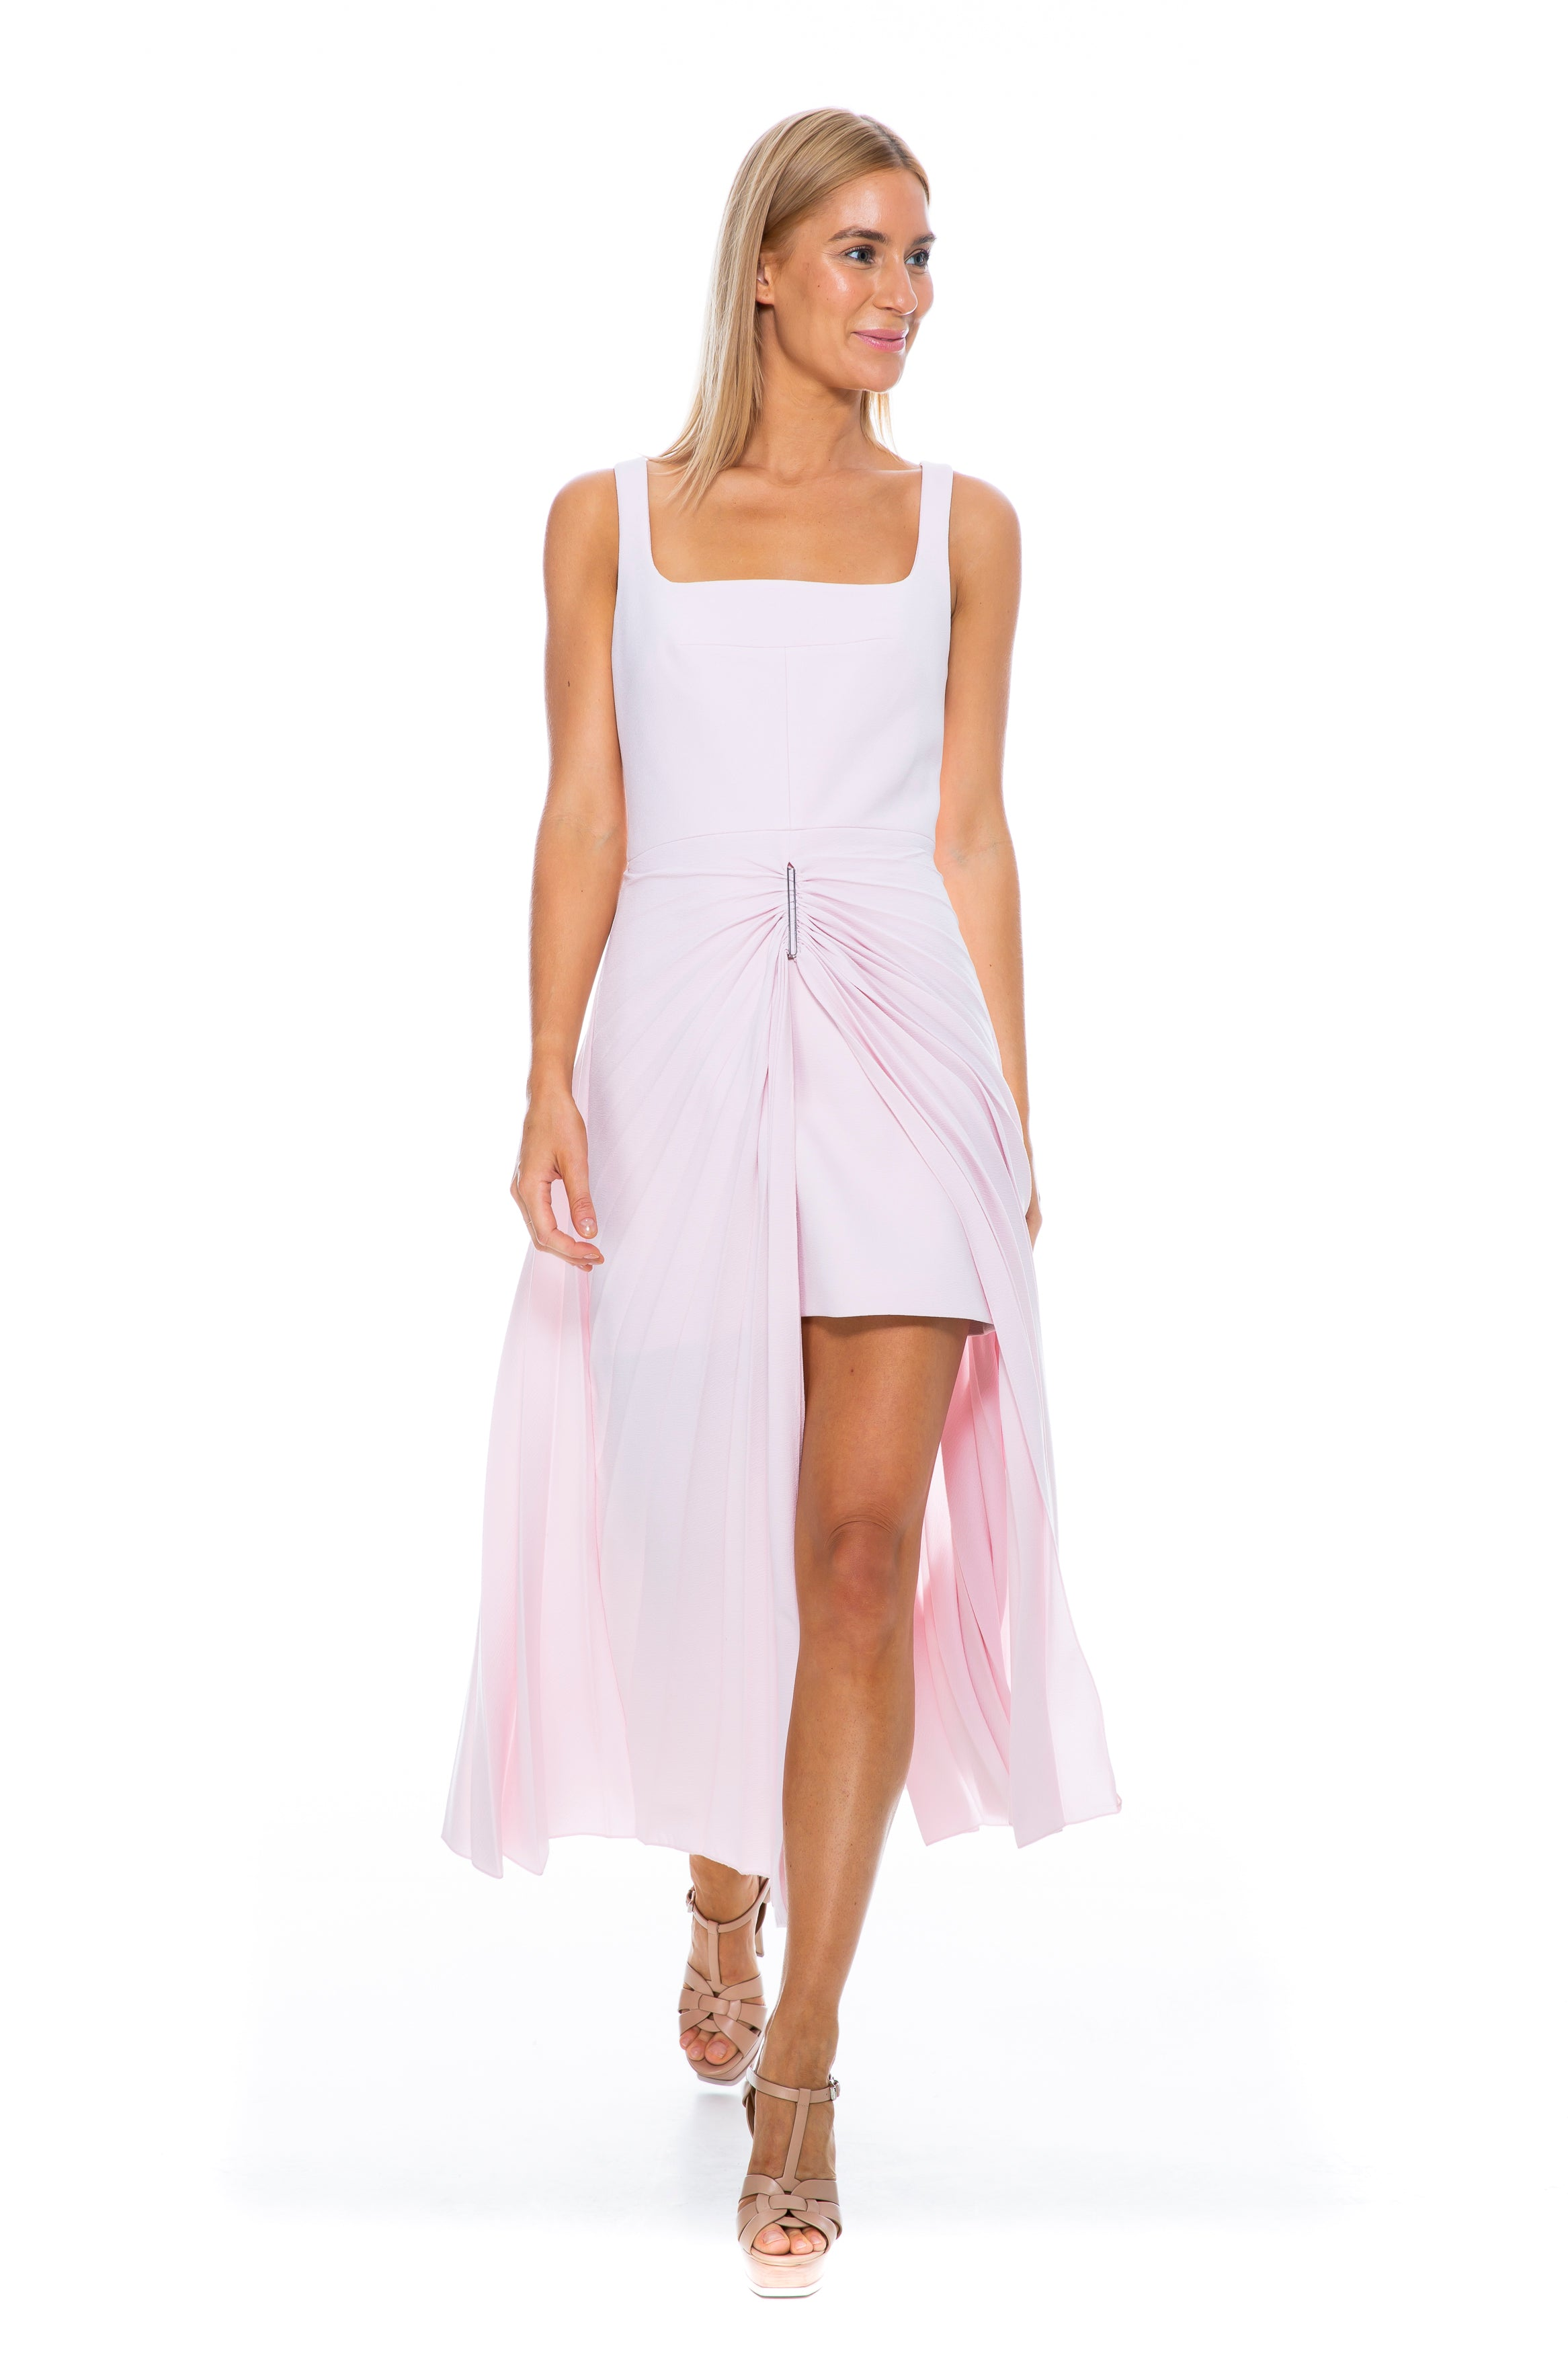 ELLIPSE PLEAT SUNRAY DRESS PINK